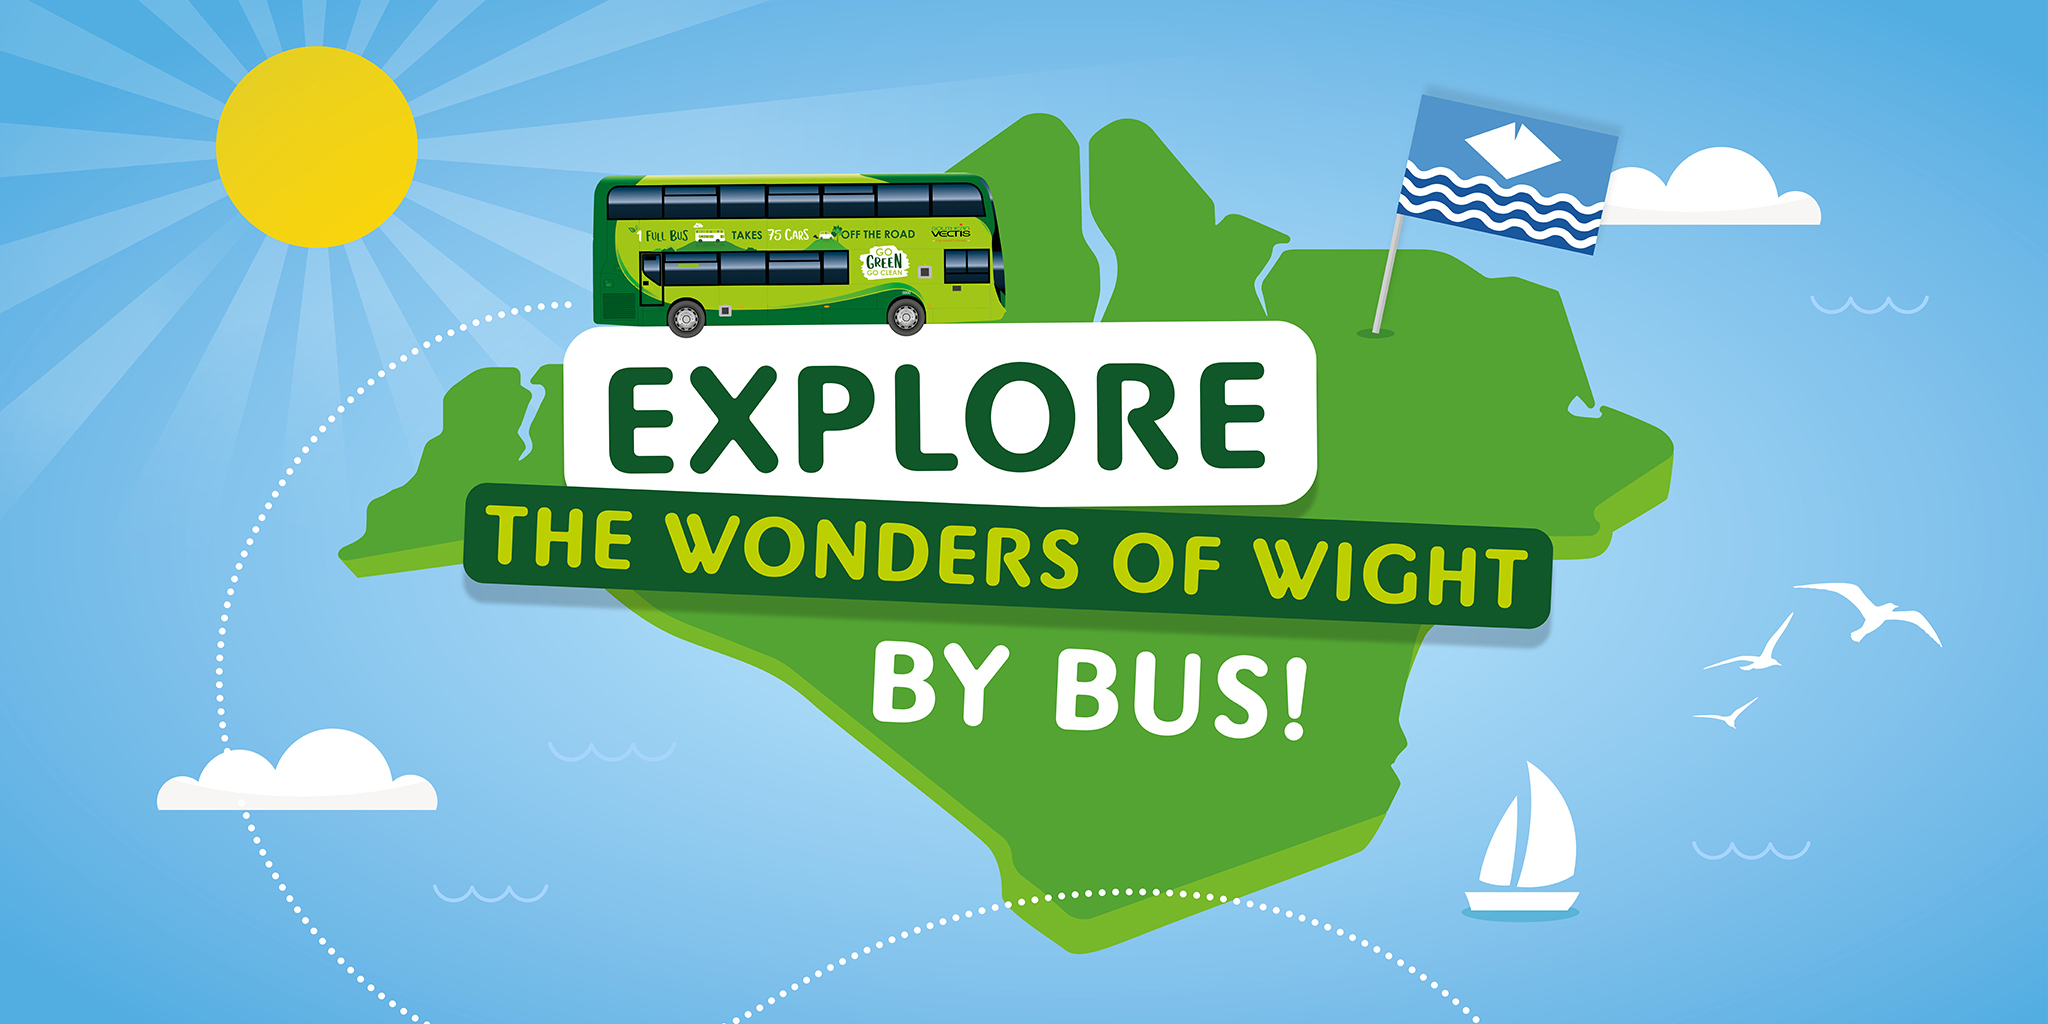 Illustration of exploring the wonders of wight by bus